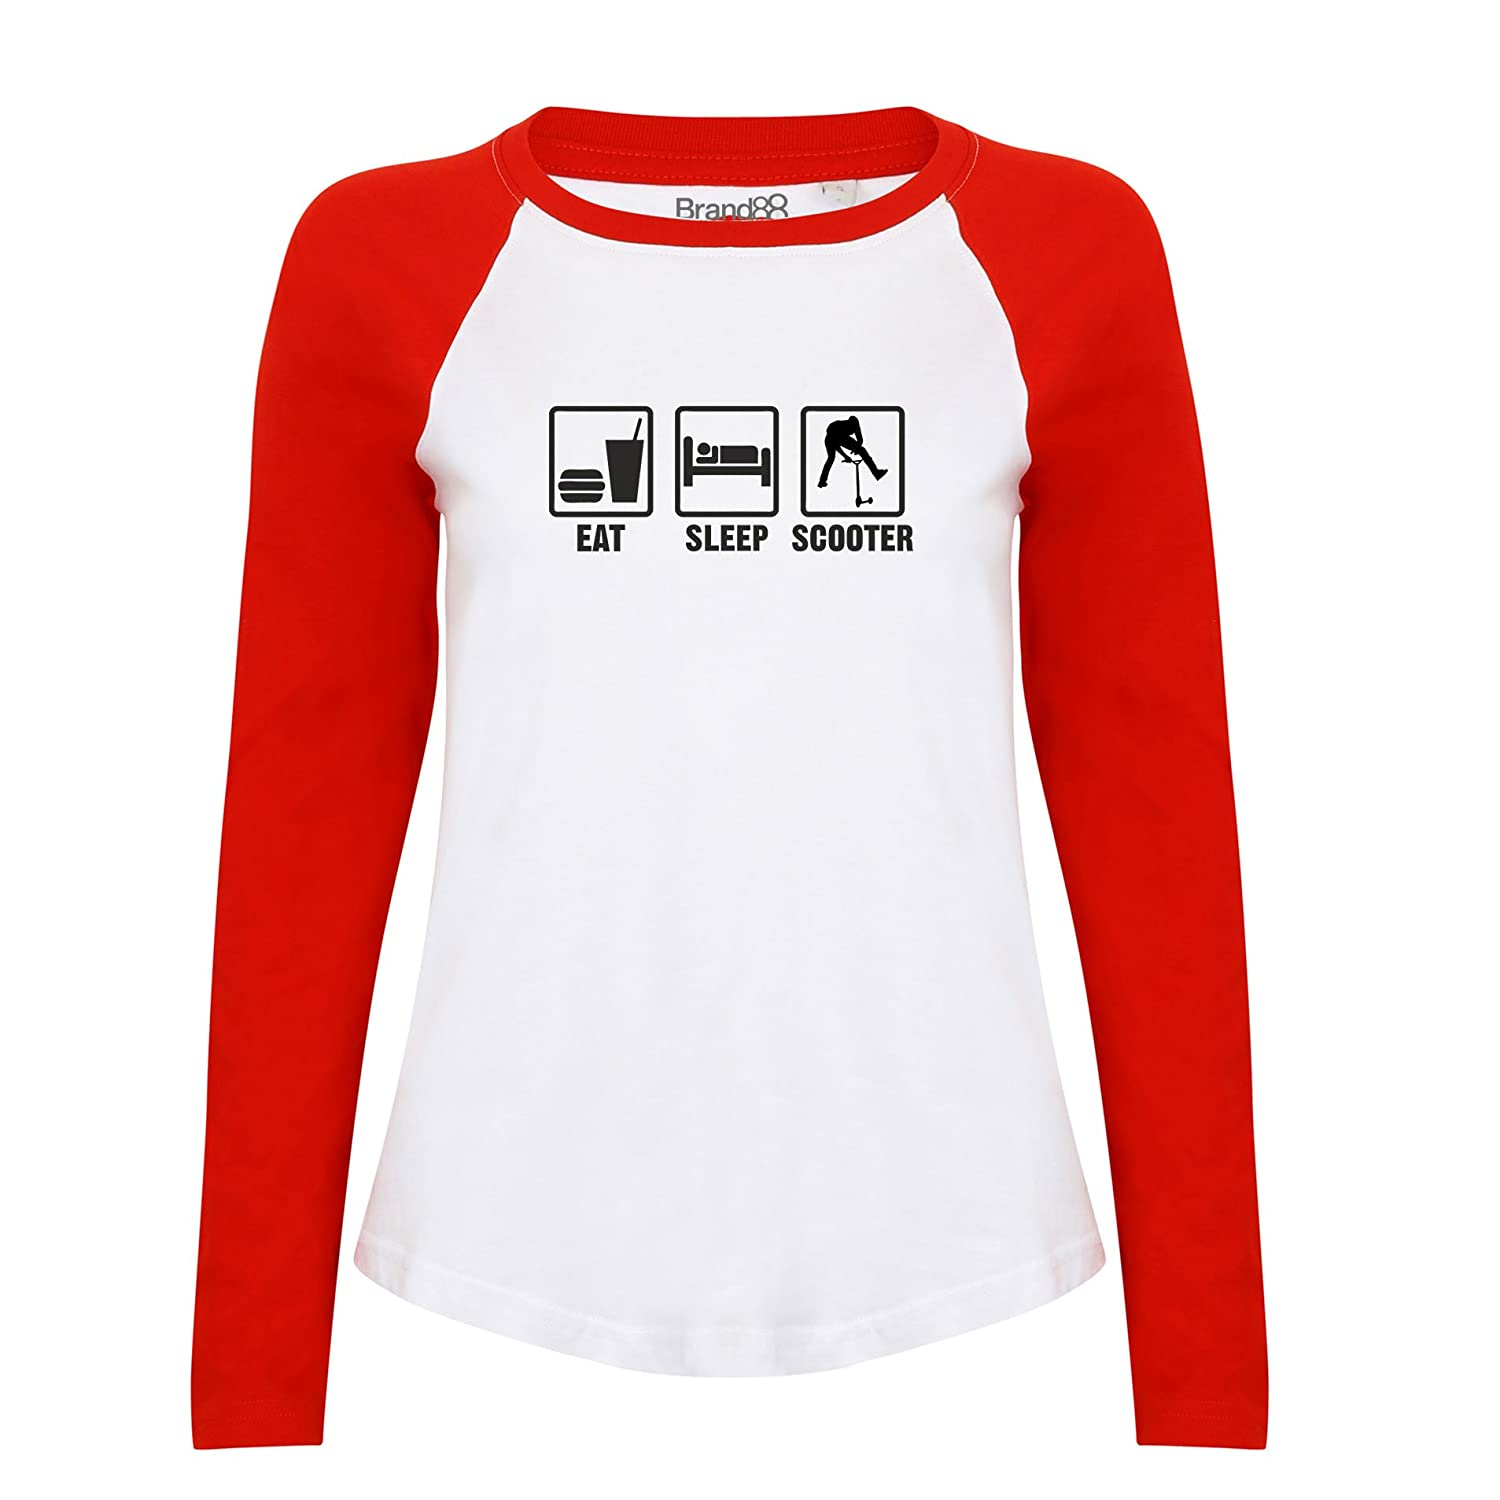 Brand88 Eat Sleep Scooter, Damen Langarm Baseball T-Shirt: Amazon.de:  Bekleidung